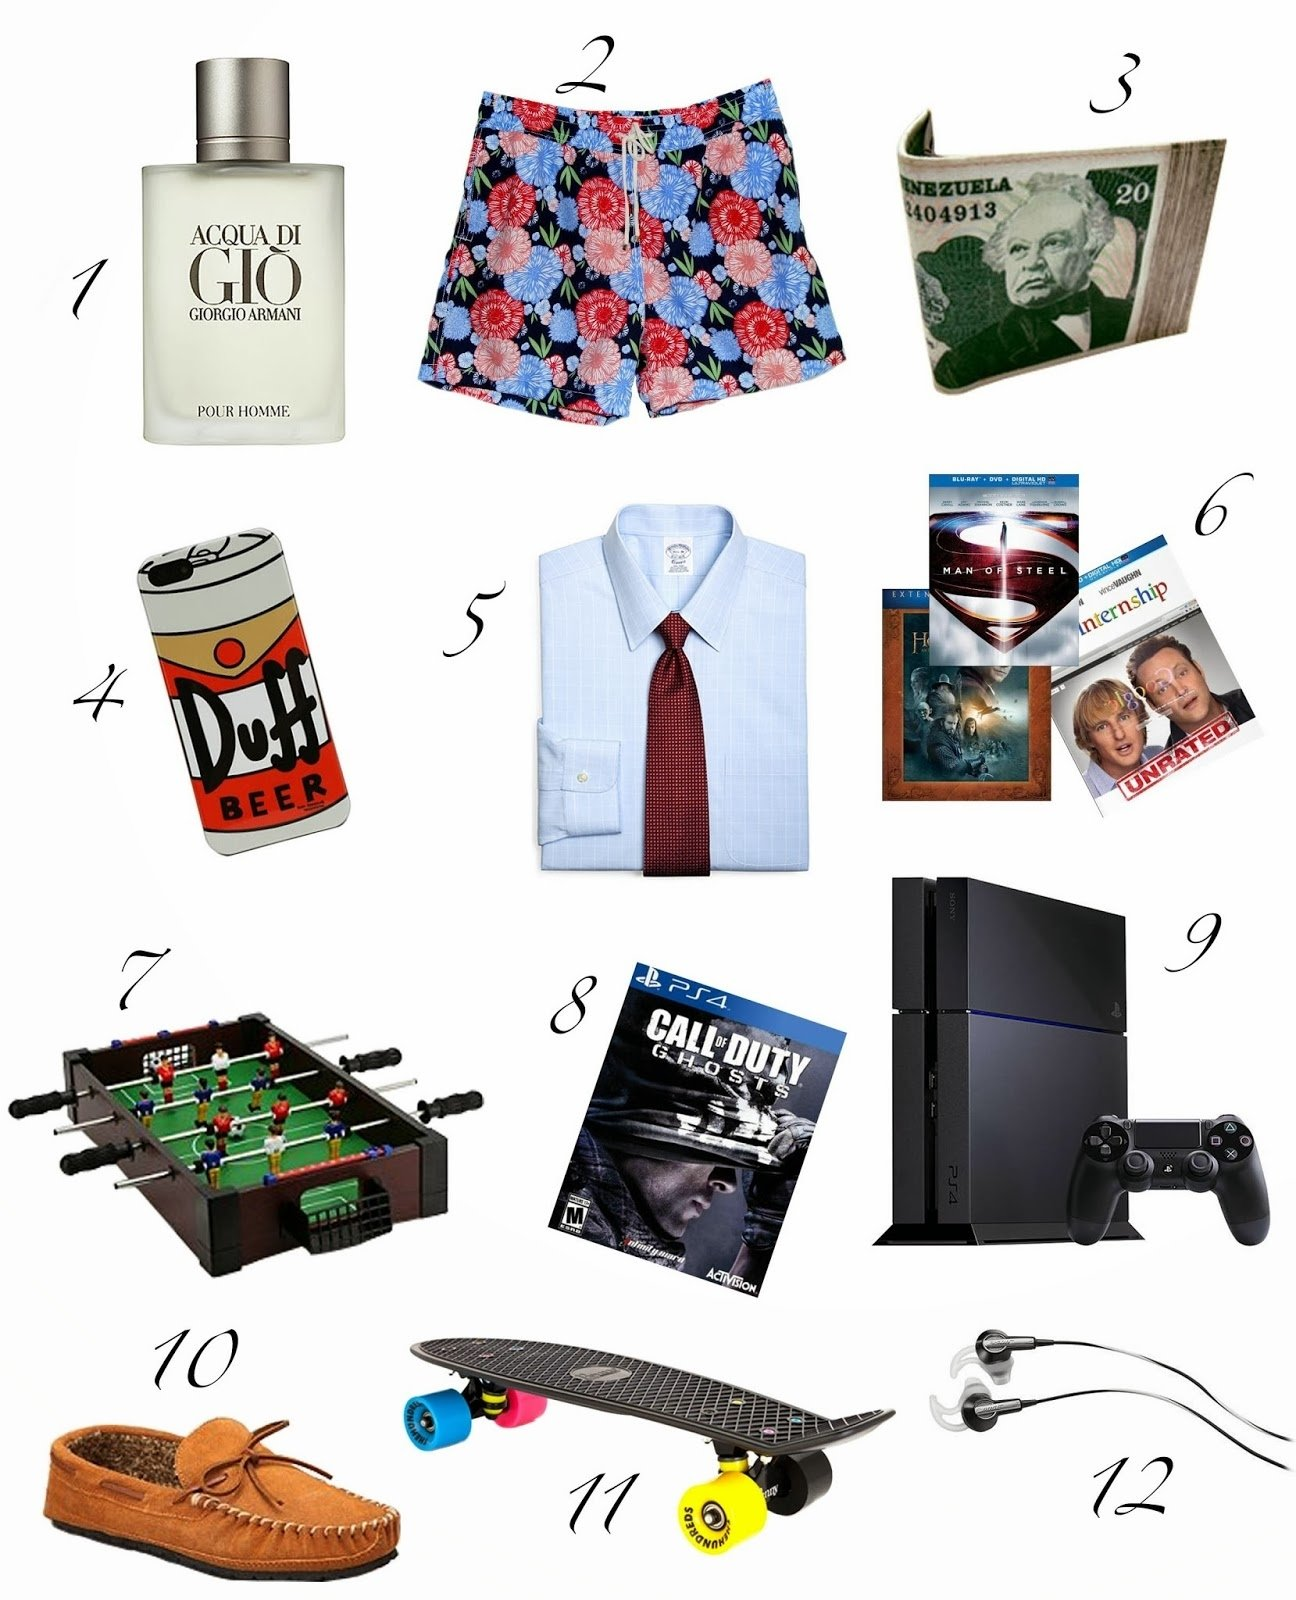 10 Gorgeous Great Christmas Gift Ideas For Men